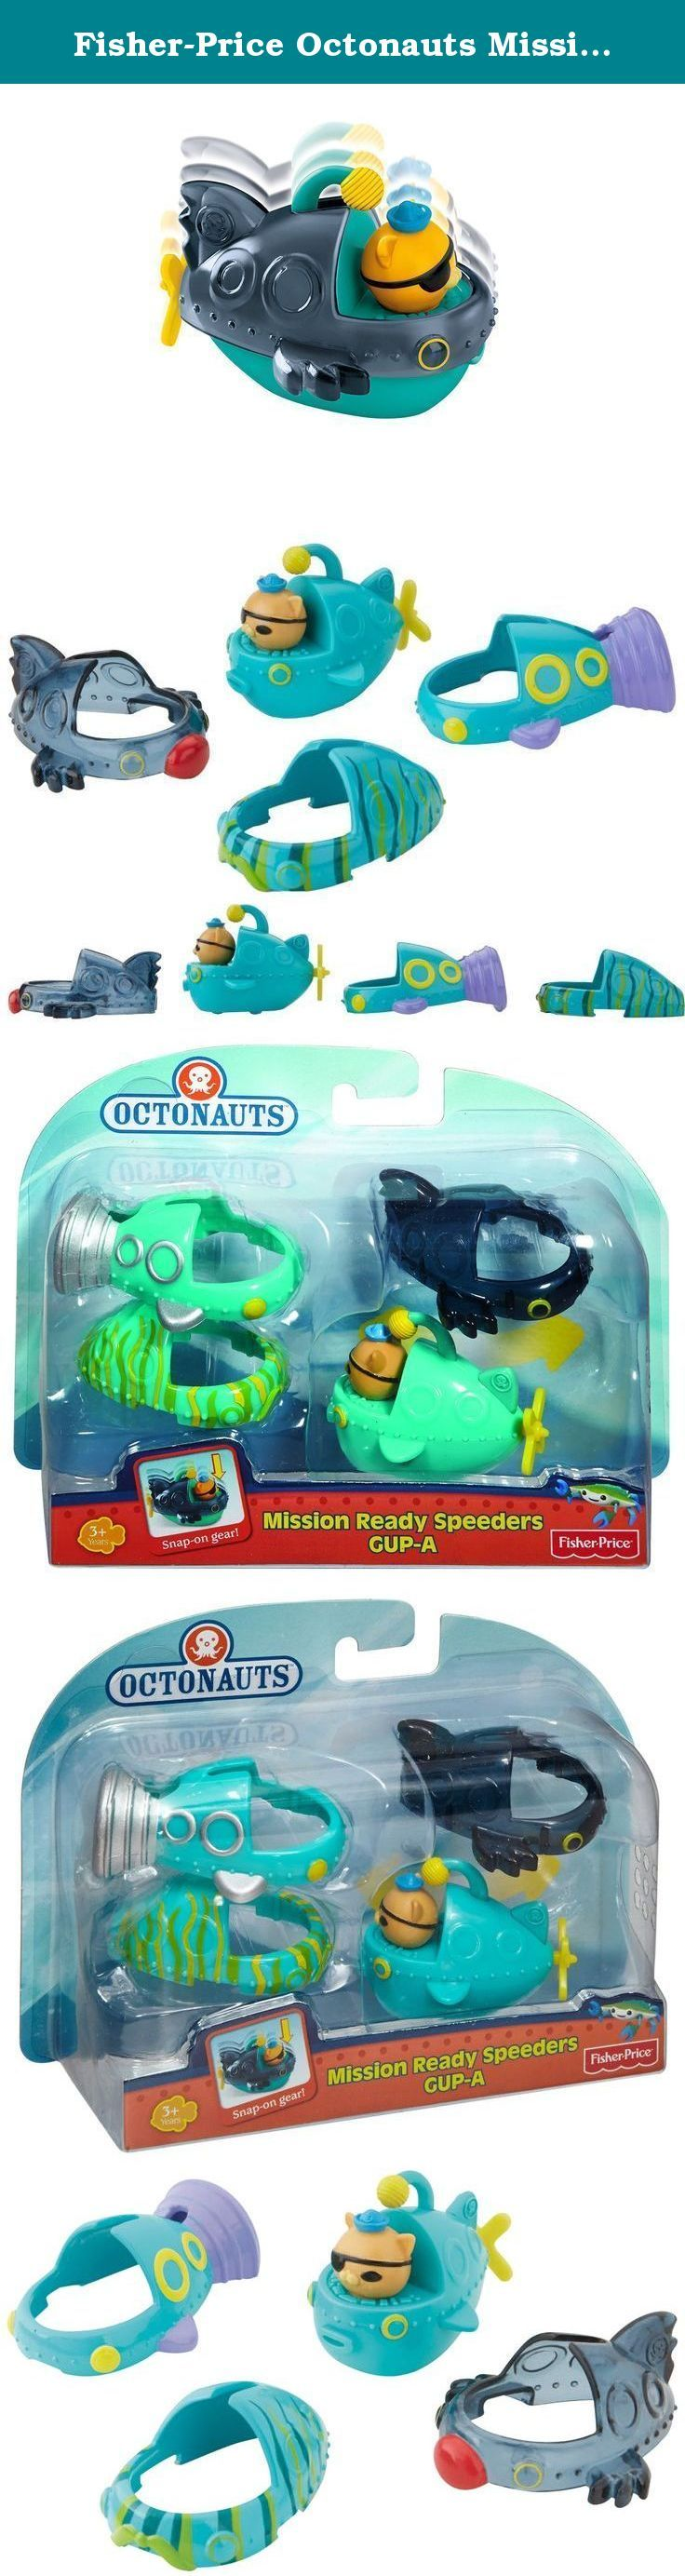 Fisher-Price Octonauts Mission Ready Gup Speeders Gup-A. No mission is impossible when you have the right gear and gadgets for your Gap Speeders! Designed to outfit your mini Gap-A for every adventure, these Snap-On shells allow you to disguise and gear up your Gap! Cover the Gap with kelp camouflage, travel at top speed with a turbo transformation, or explore in super stealth mode with a shadow shell! Includes the Gap-A Gap Speeder driven by Kwazii and three Snap-On accessories. Collect…